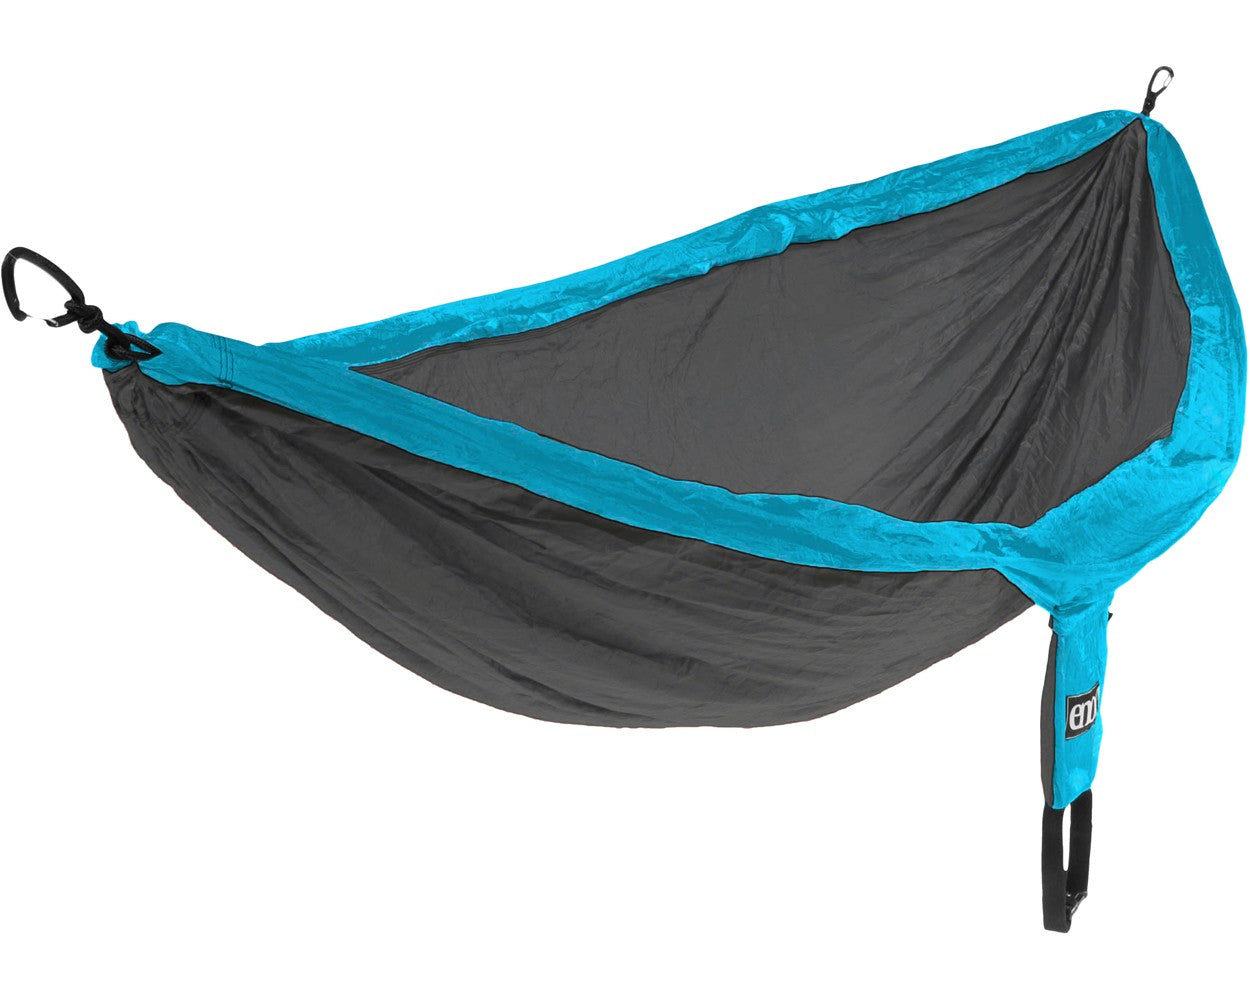 ENO DoubleNest Hammock - Trailblazer Outdoors, Pickering